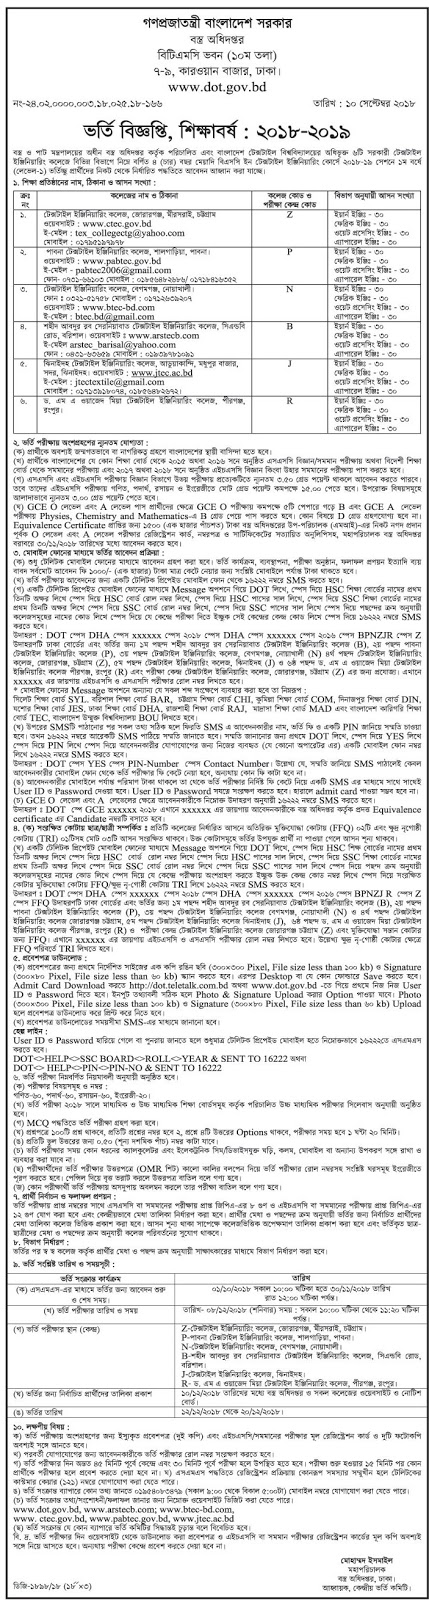 Department of Textiles (DOT) BSc in Textile Engineering Admission Circular 018-19